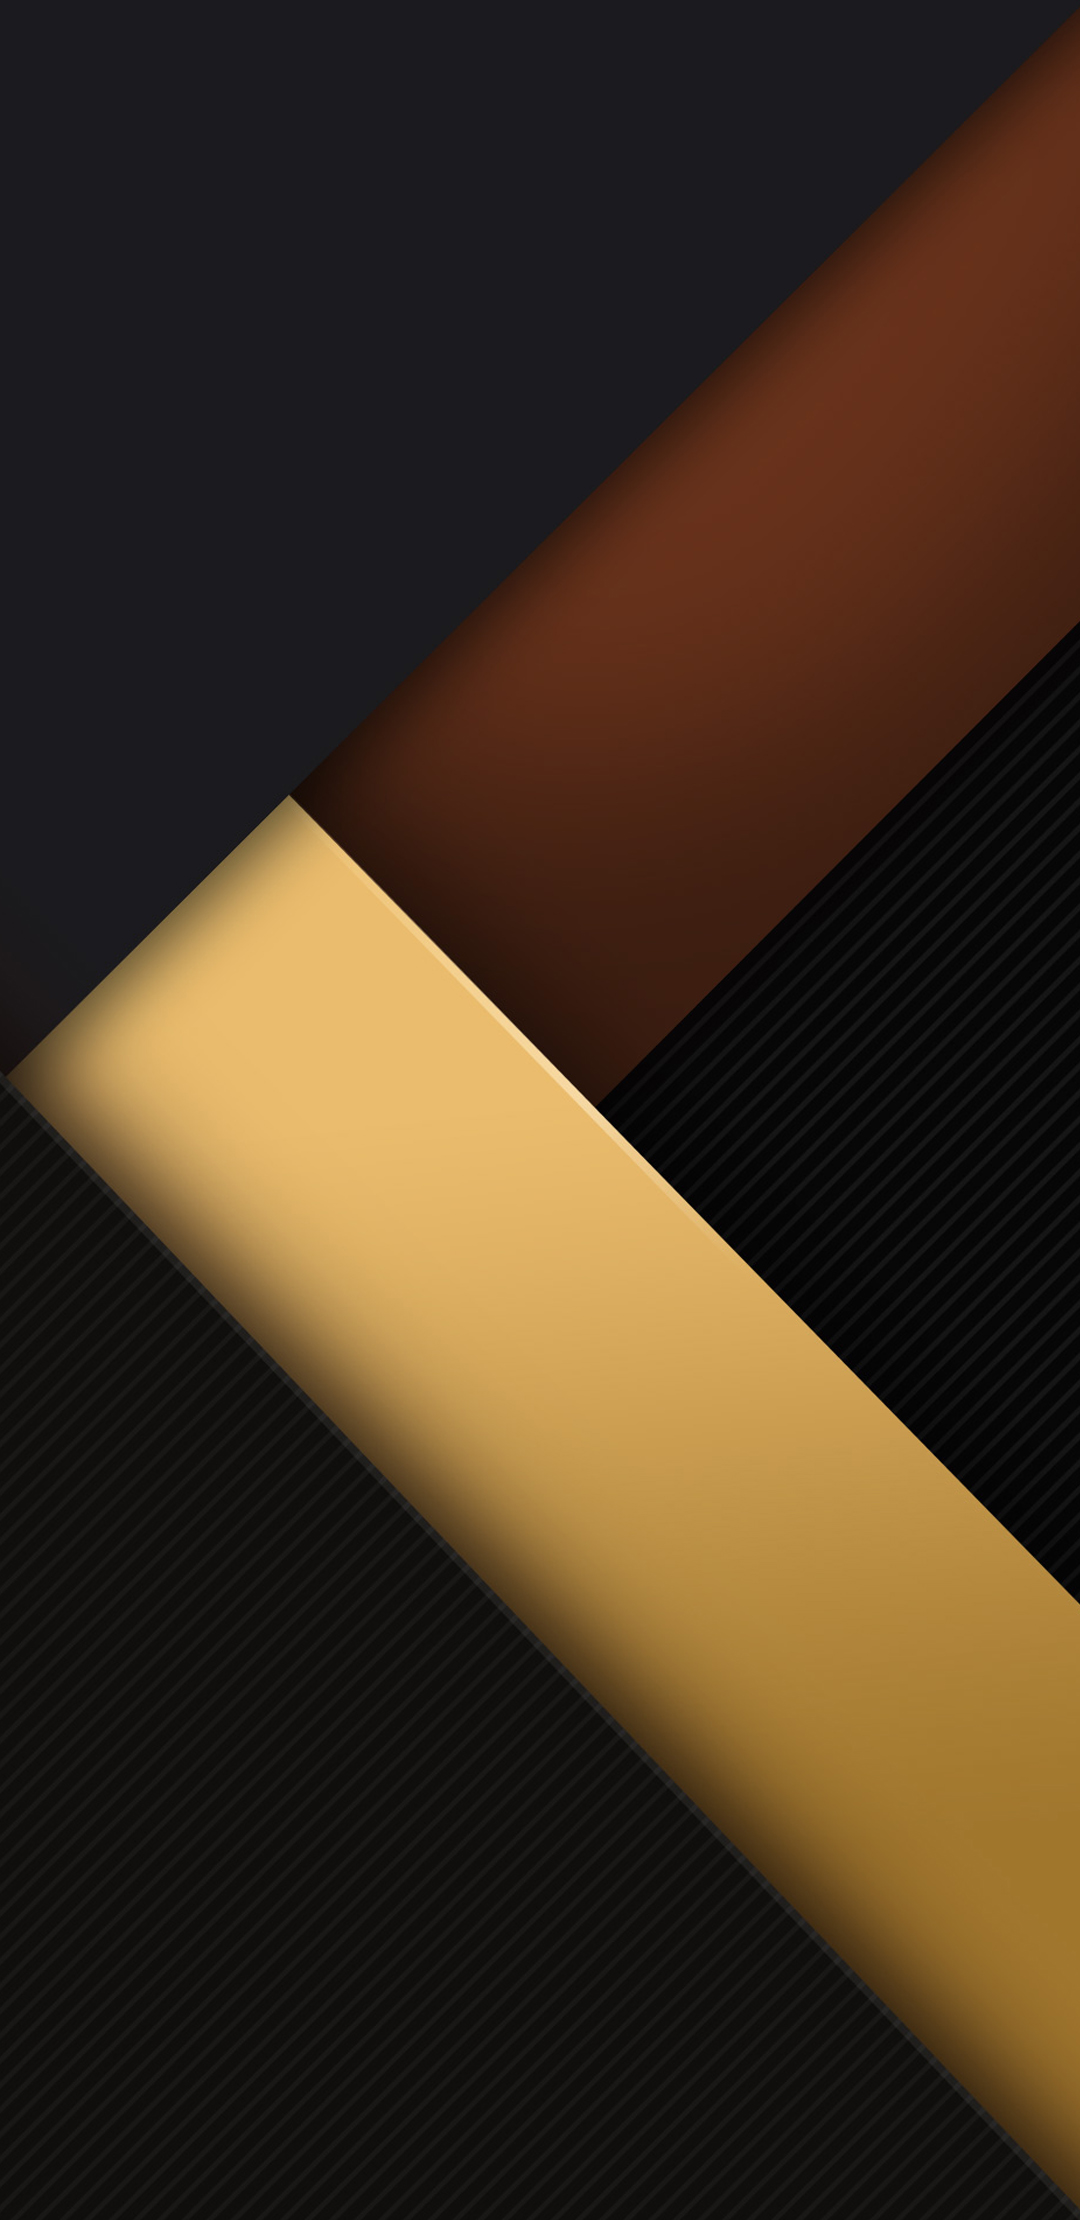 Samsung galaxy a8 background with 3d dark objects hd wallpapers wallpapers download high - 3d wallpaper for note 8 ...